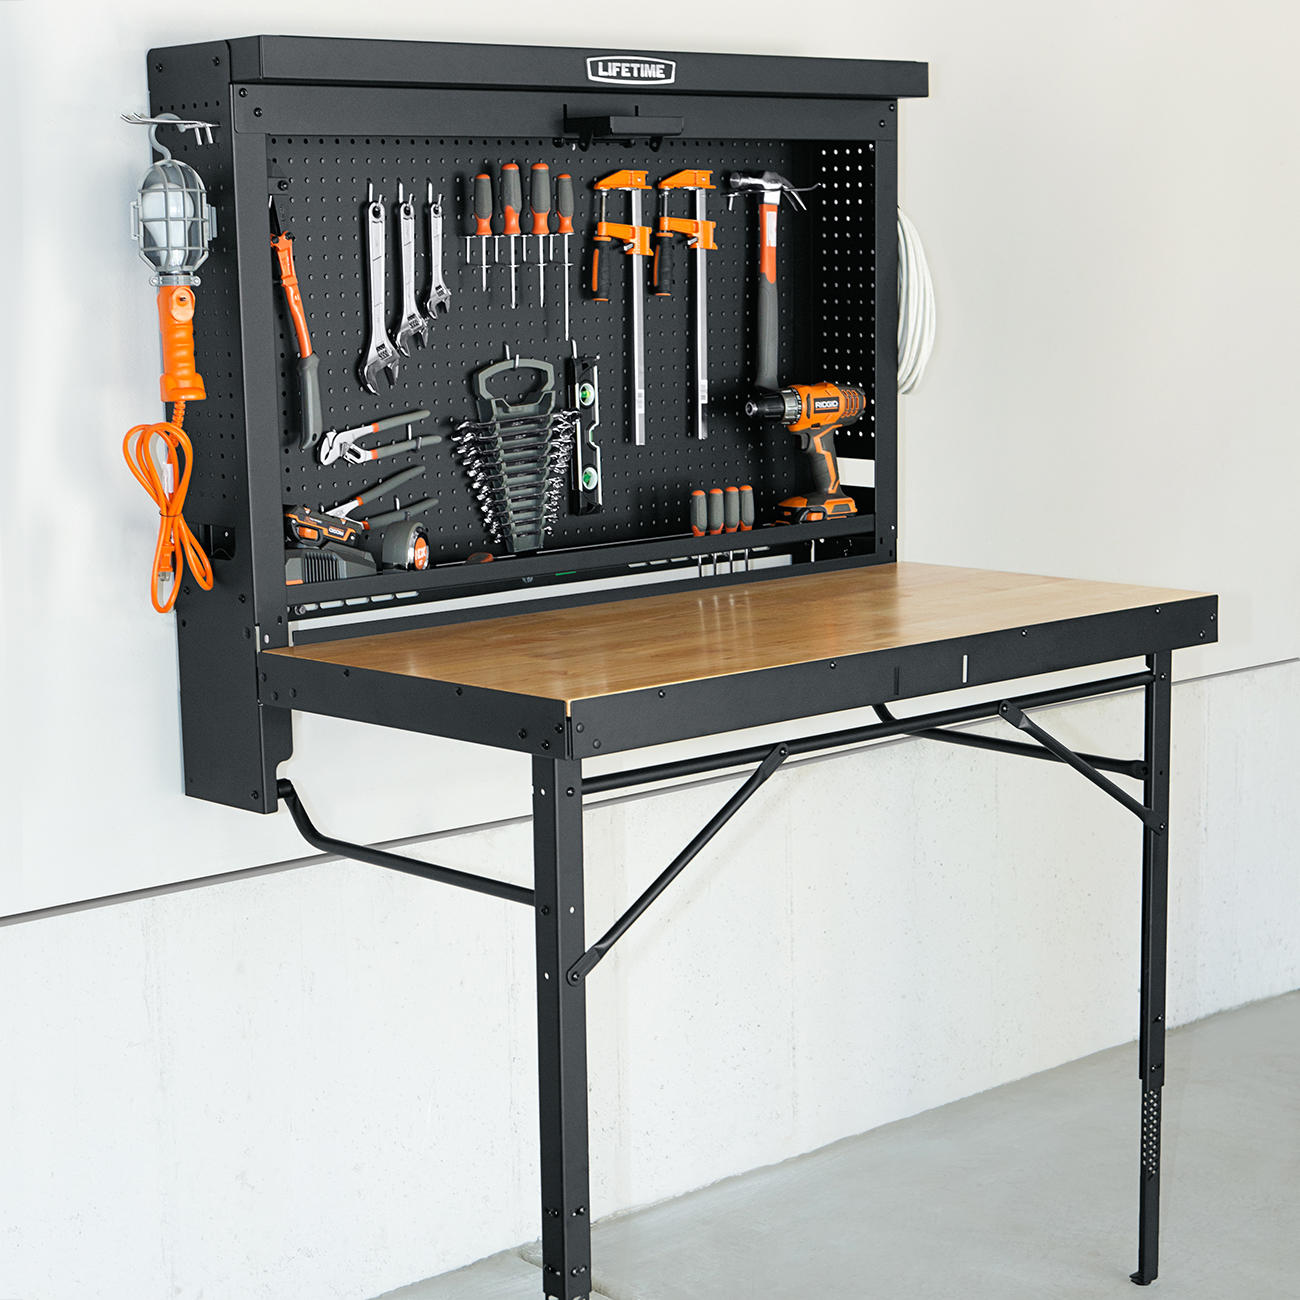 Wall Mounted Folding Workbench for Exciting Workspace Furniture Ideas: Collapsible Work Bench | Hinged Workbench | Wall Mounted Folding Workbench